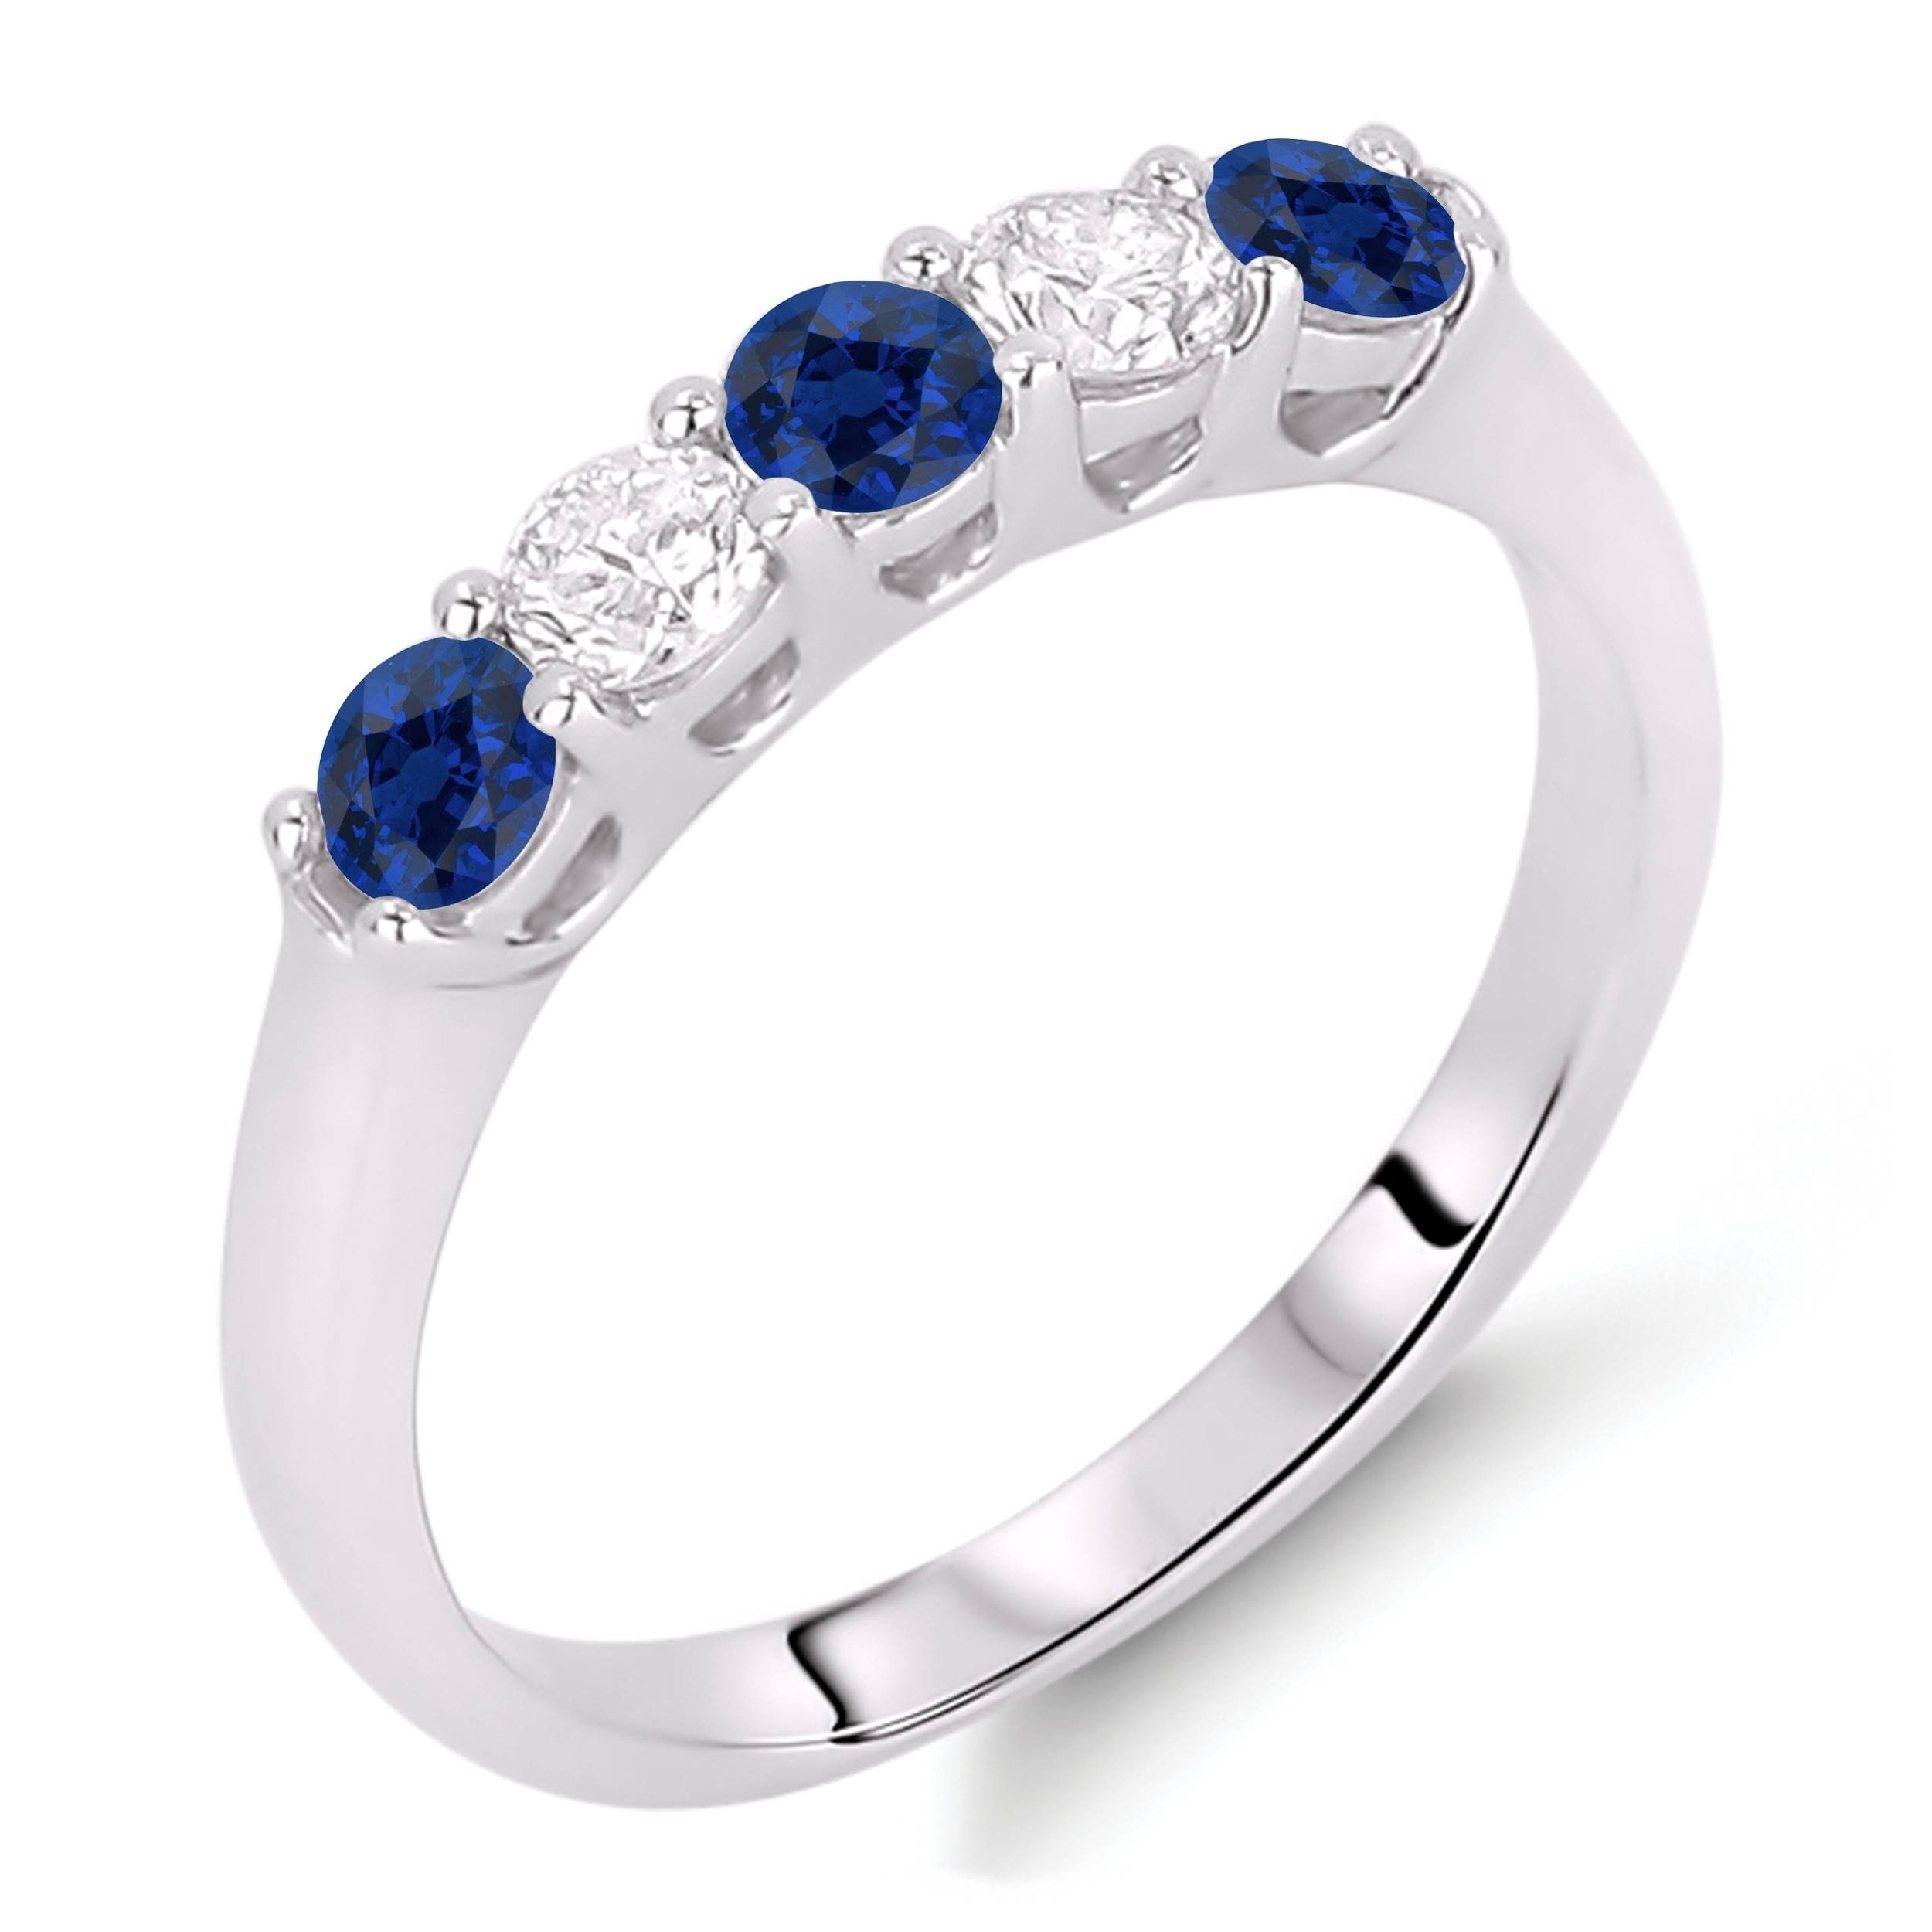 Lugaro | Sapphire Ring Intended For Recent Sapphire And Diamond Anniversary Rings (View 16 of 25)